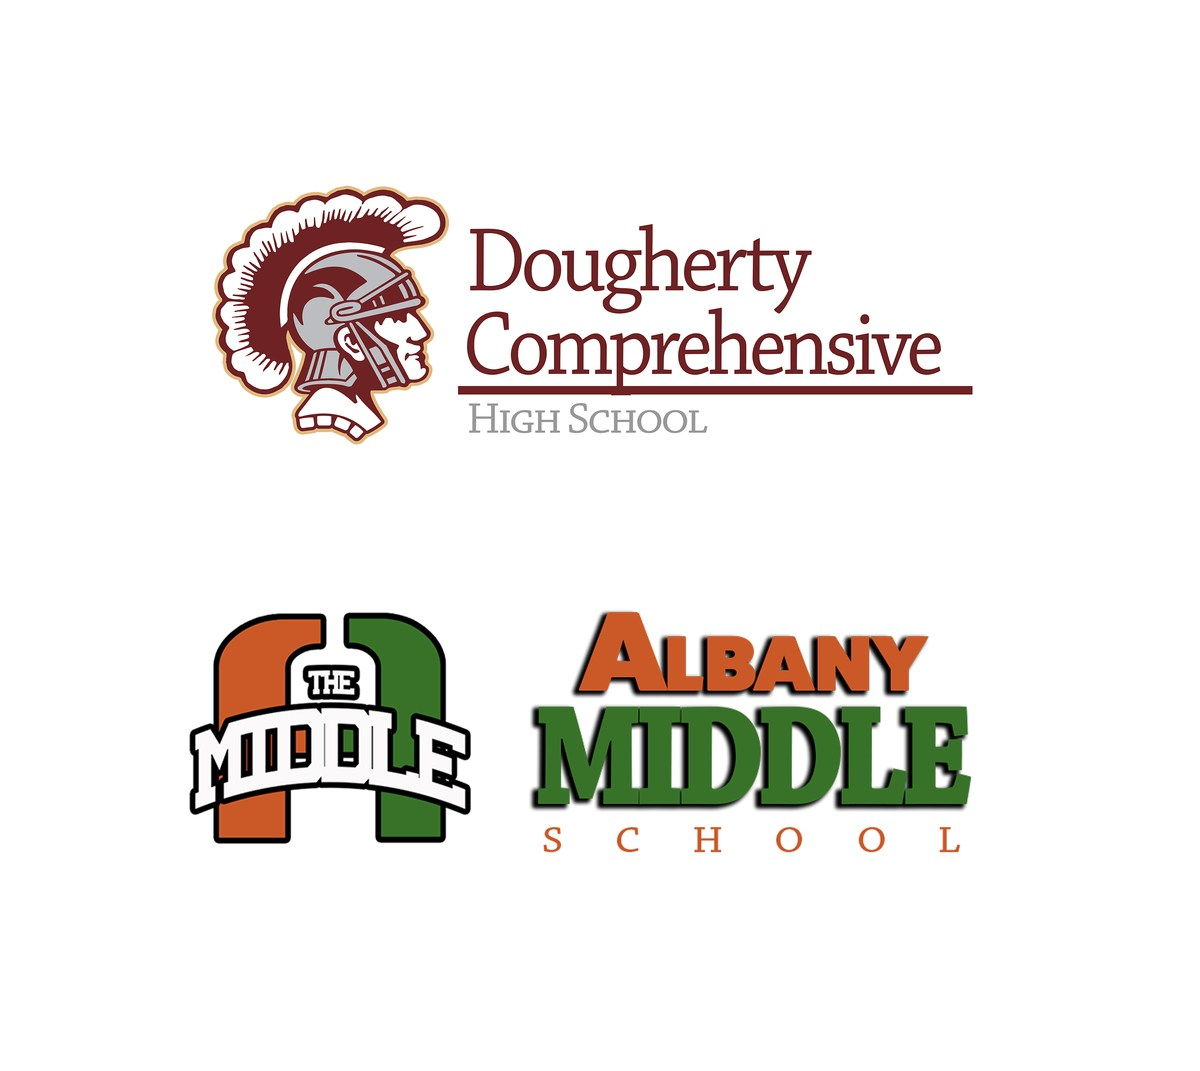 dougherty county school system board votes for realignment at dougherty and albany middle